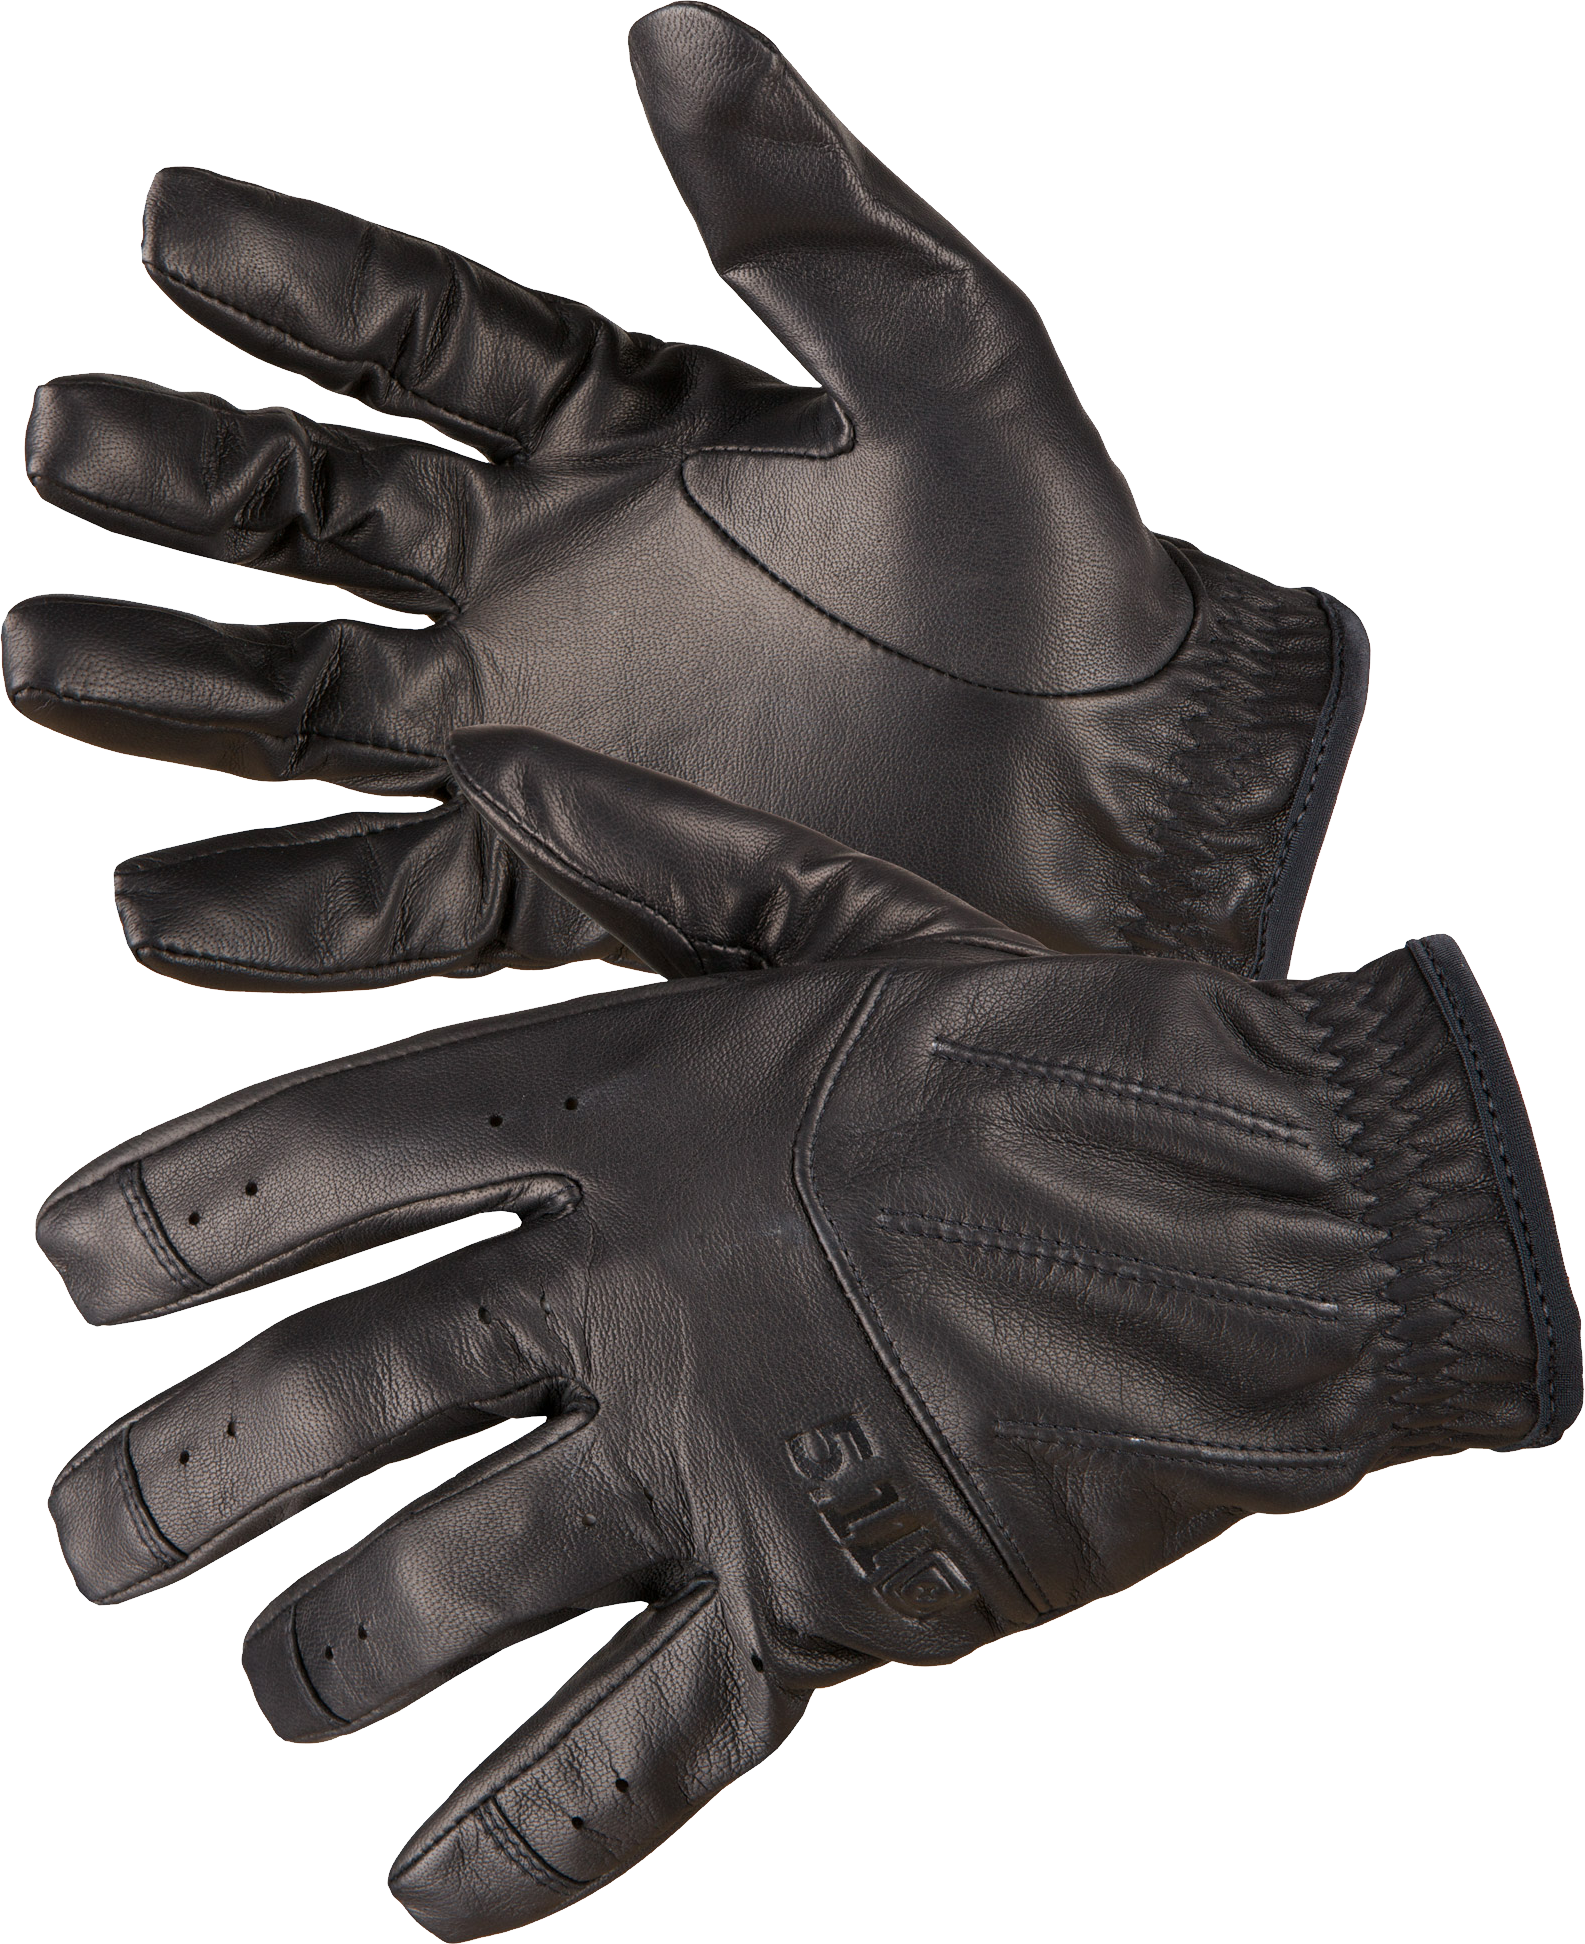 Black Leather Gloves PNG Image.